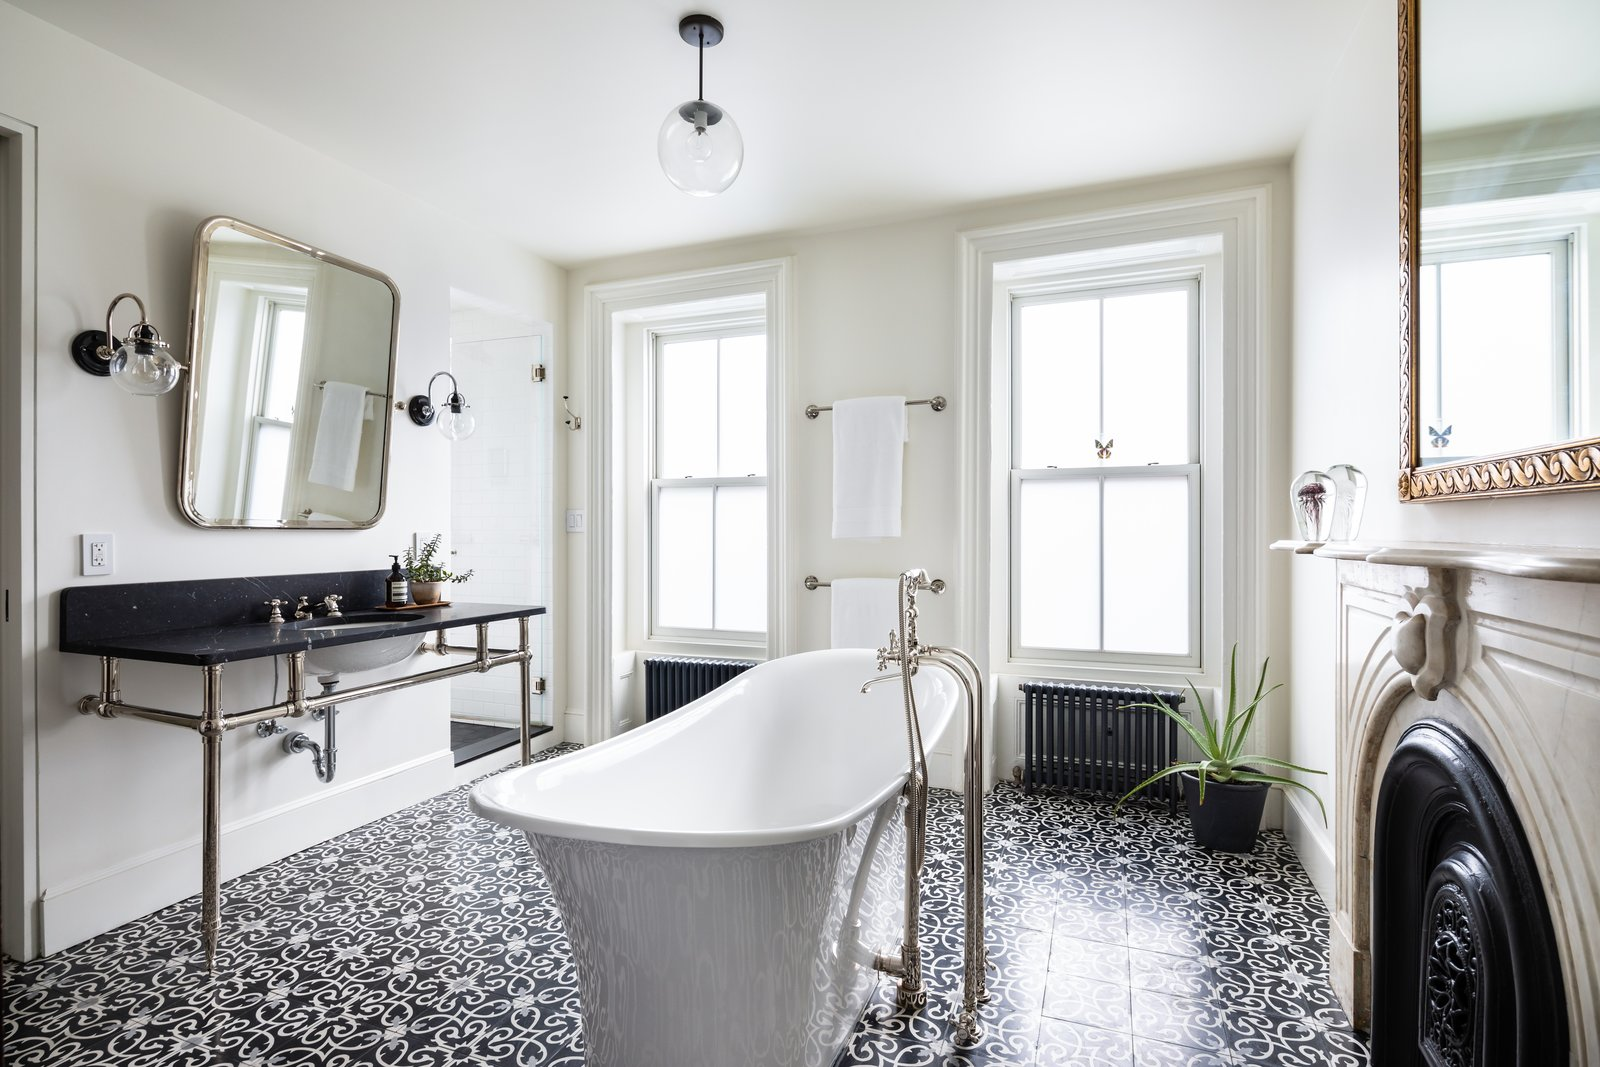 Bath, Freestanding, Wall Mount, Cement Tile, Pendant, Marble, and Wall A beautifully designed, light-filled bathroom features a deep Victoria + Albert freestanding tub, an original marble mantle, a large black marble-topped vanity, and an encaustic concrete-tiled floor.     Best Bath Pendant Wall Marble Photos from A Beautifully Restored Brooklyn Brownstone Is Listed at $4M